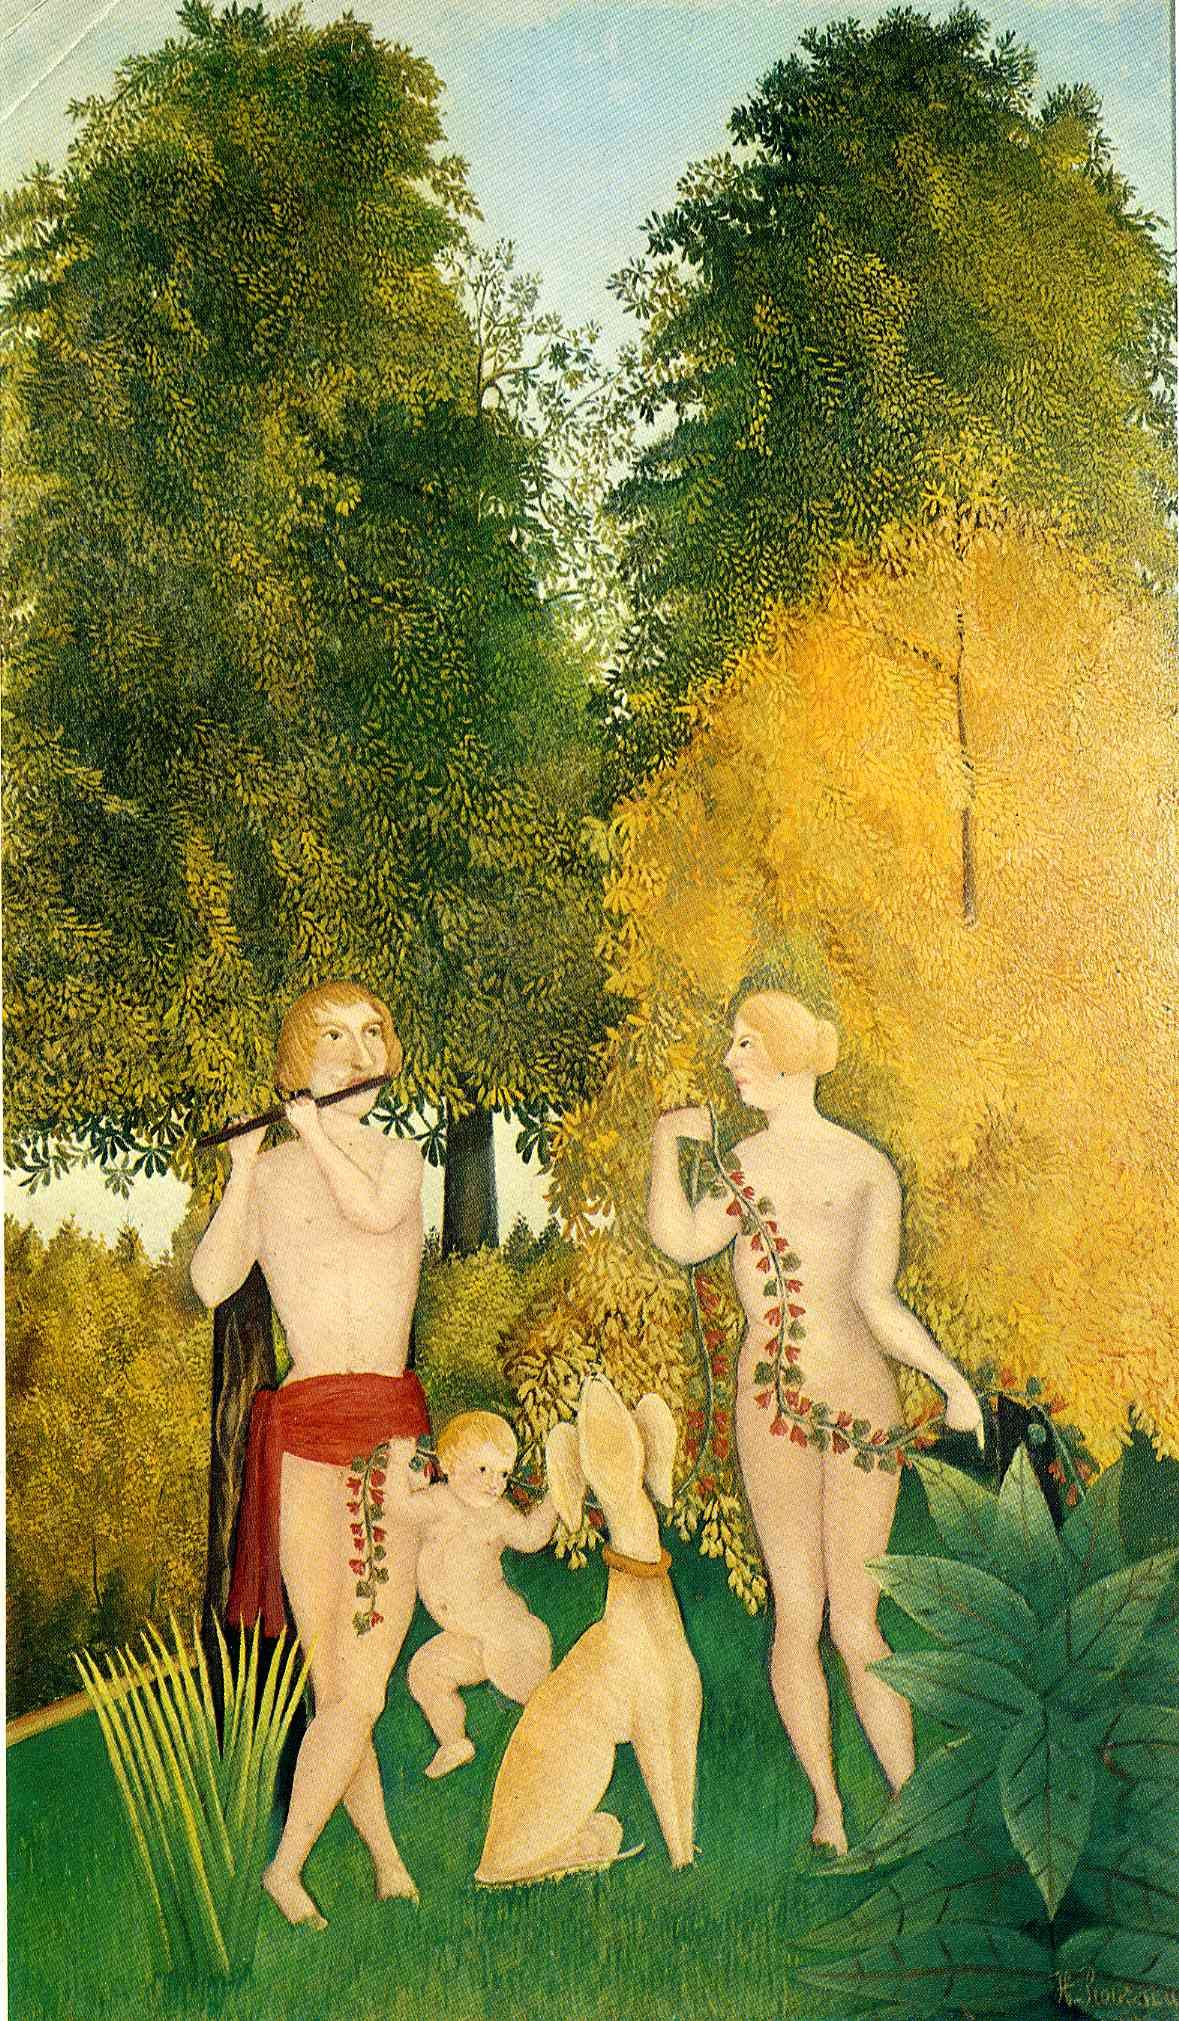 The Happy Quartet by @henrirousseau #naïveart